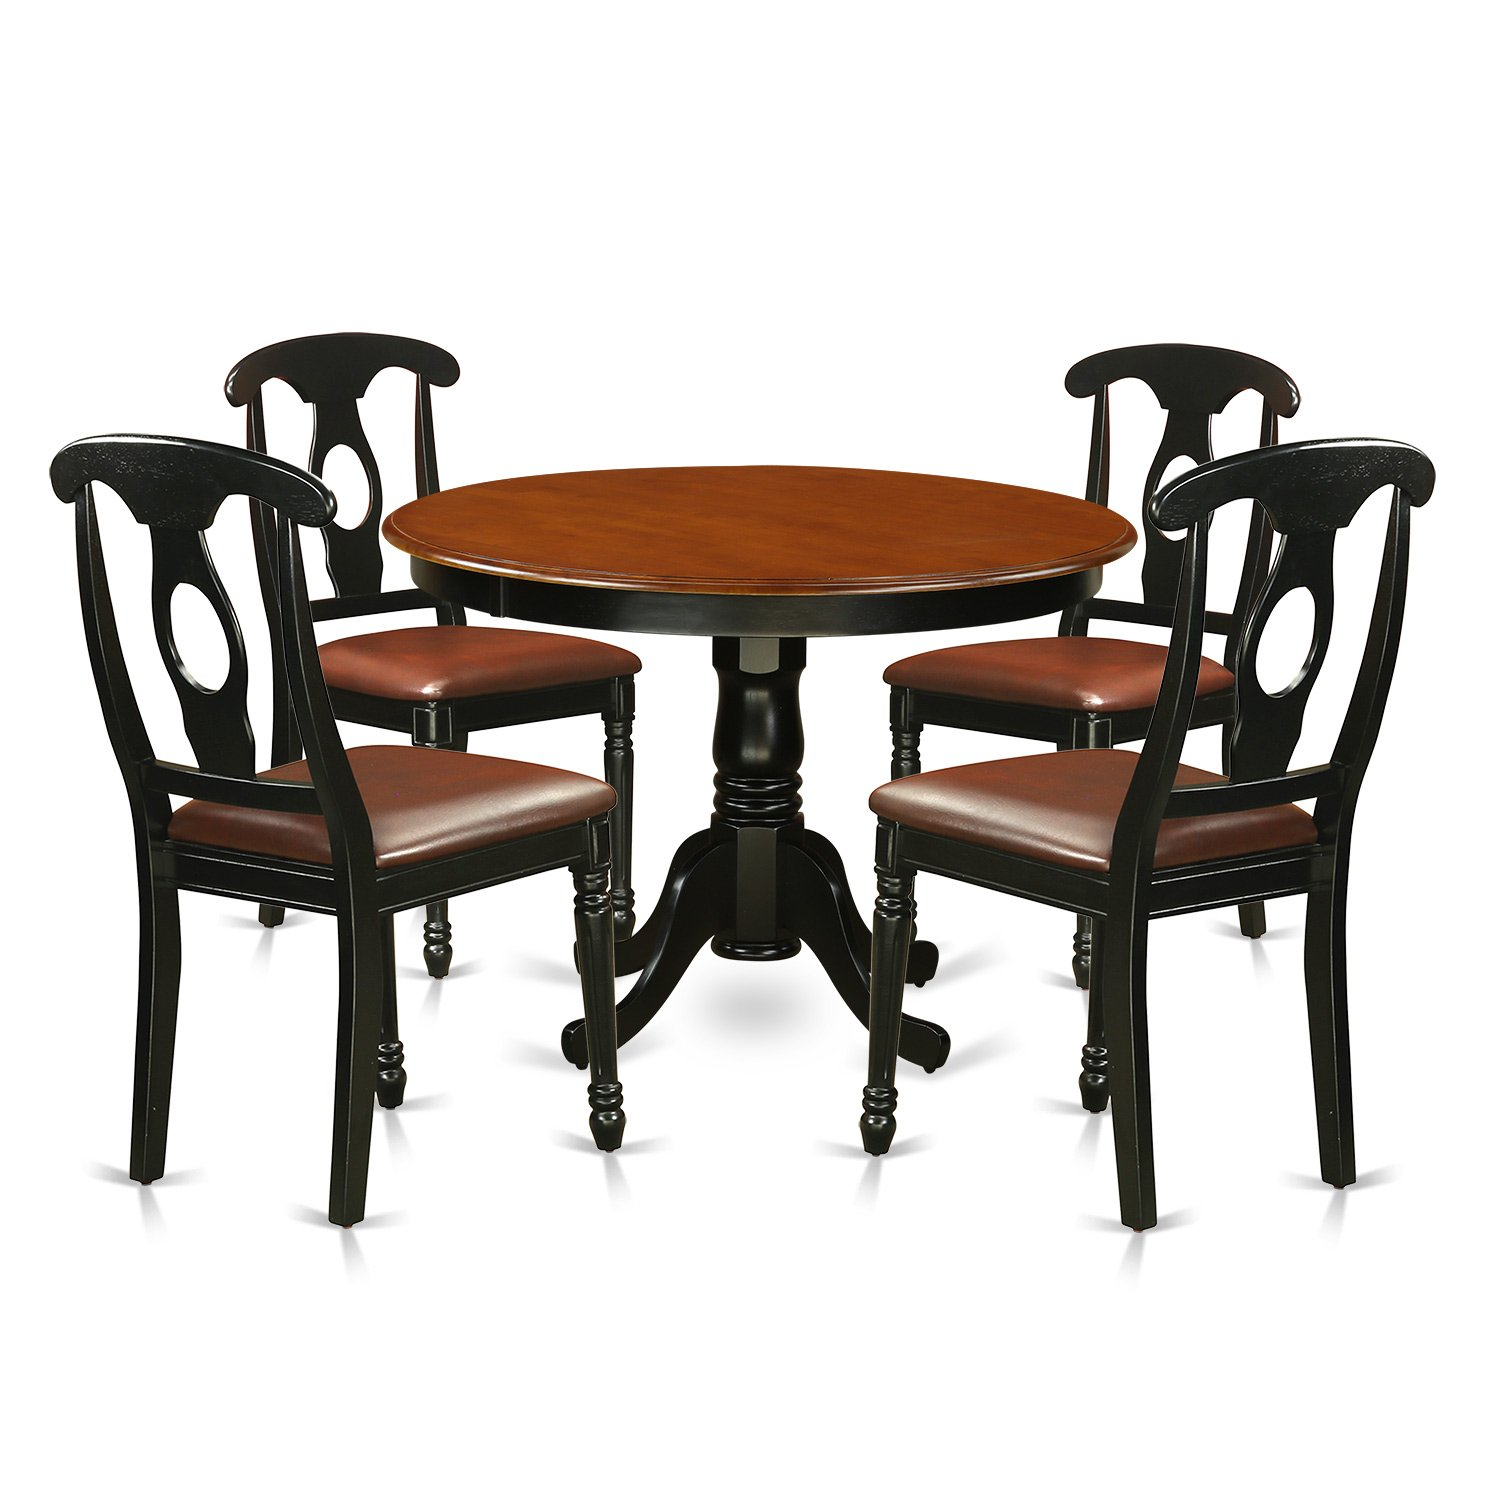 Round Dining Table With Leather Chairs: Round Dining Table With Leather Chairs